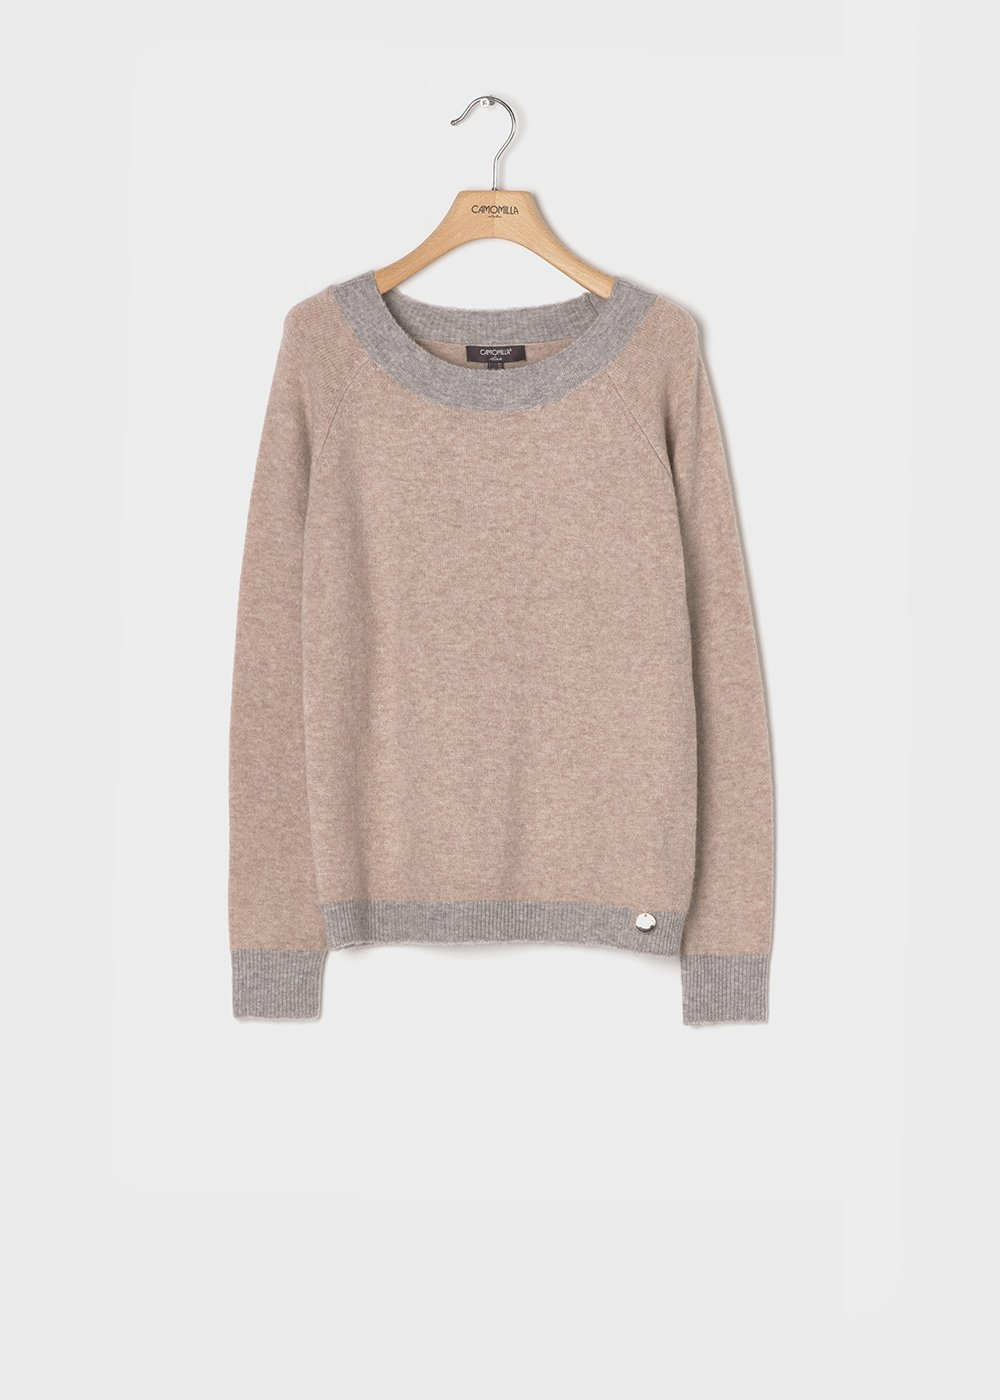 Sweater with mastic-coloured wool and grey contrasts - Mastic - Woman